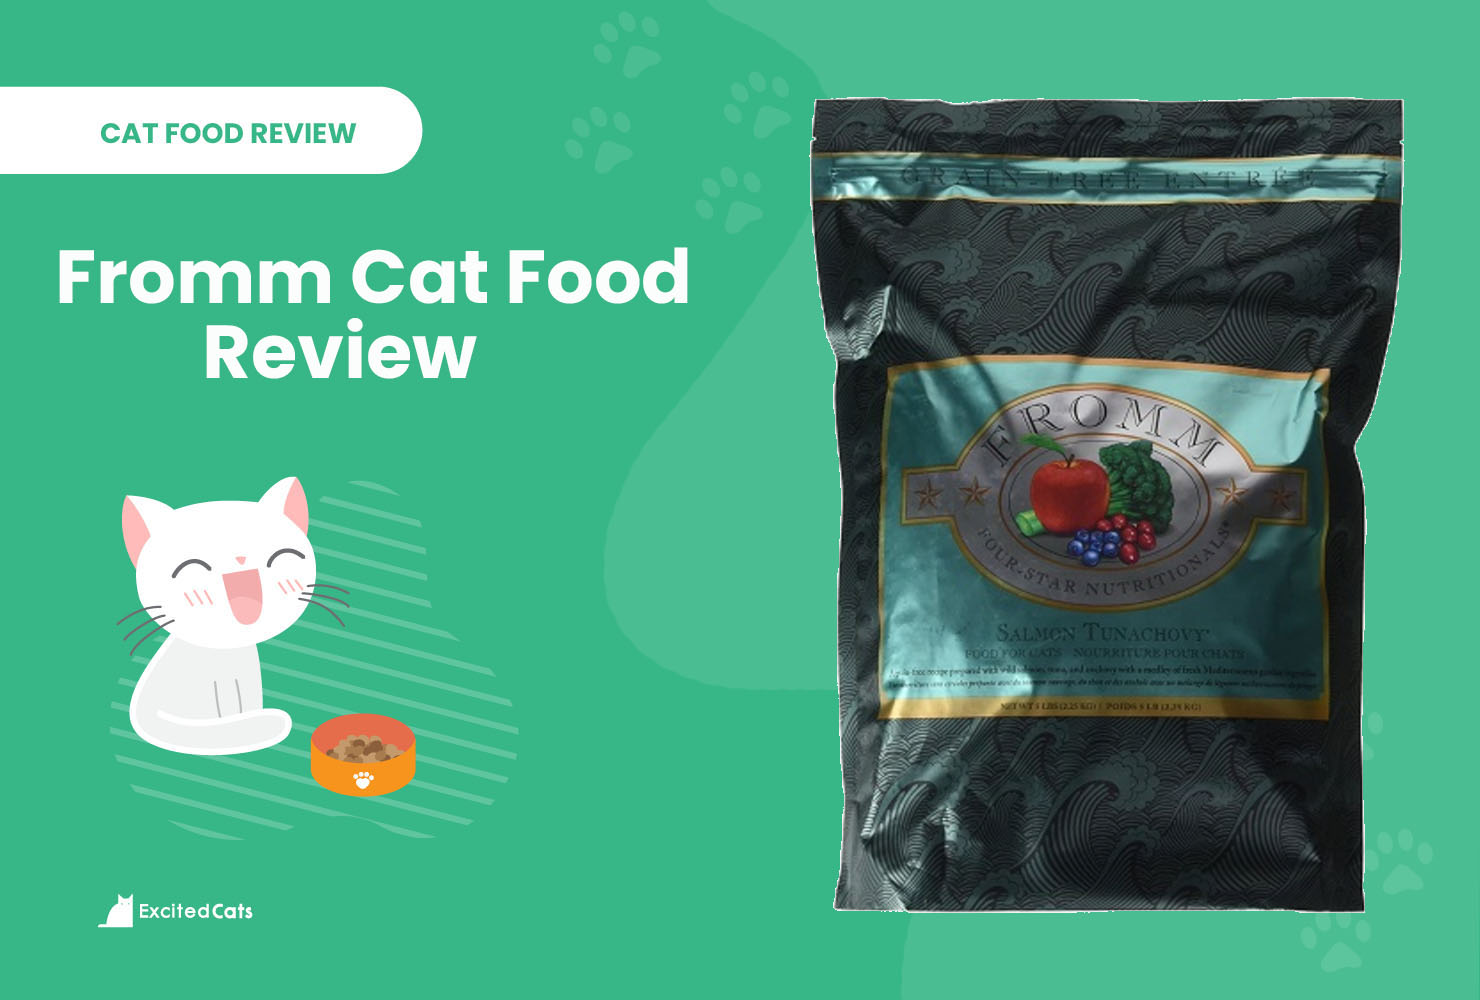 fromm cat food review